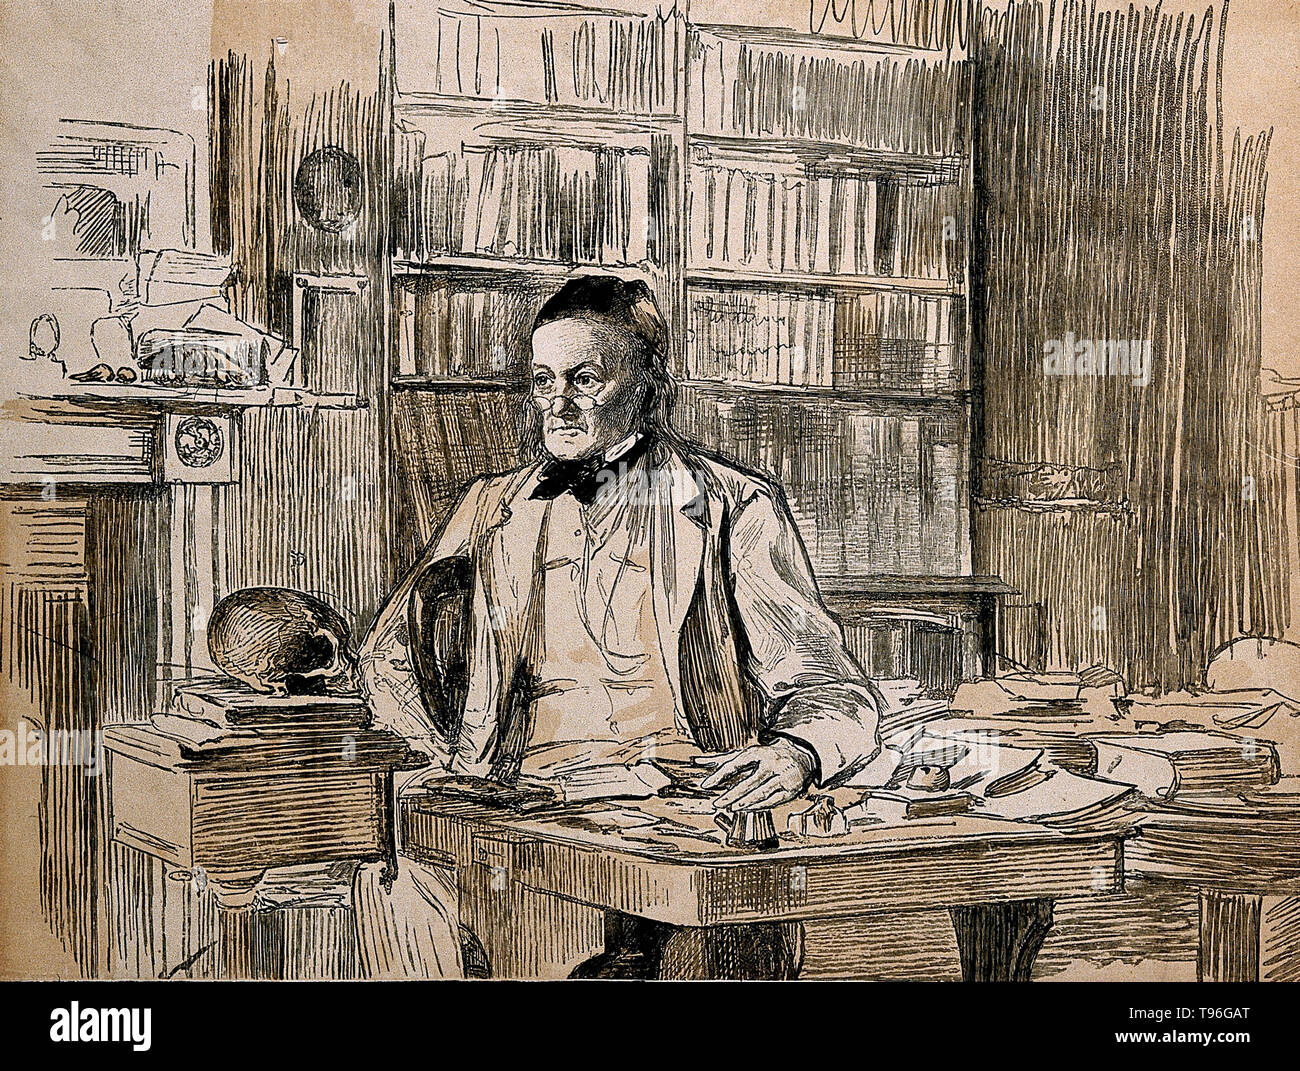 Richard Owen (July 20, 1804 - December 18, 1892) was an English biologist, comparative anatomist and paleontologist. One of his positions was that of prosector for the London Zoo, which meant that he had to dissect and preserve any zoo animals that died in captivity. This gave him vast experience with the anatomy of exotic animals. He produced a vast array of scientific work, but is probably best remembered today for coining the word Dinosauria. Stock Photo